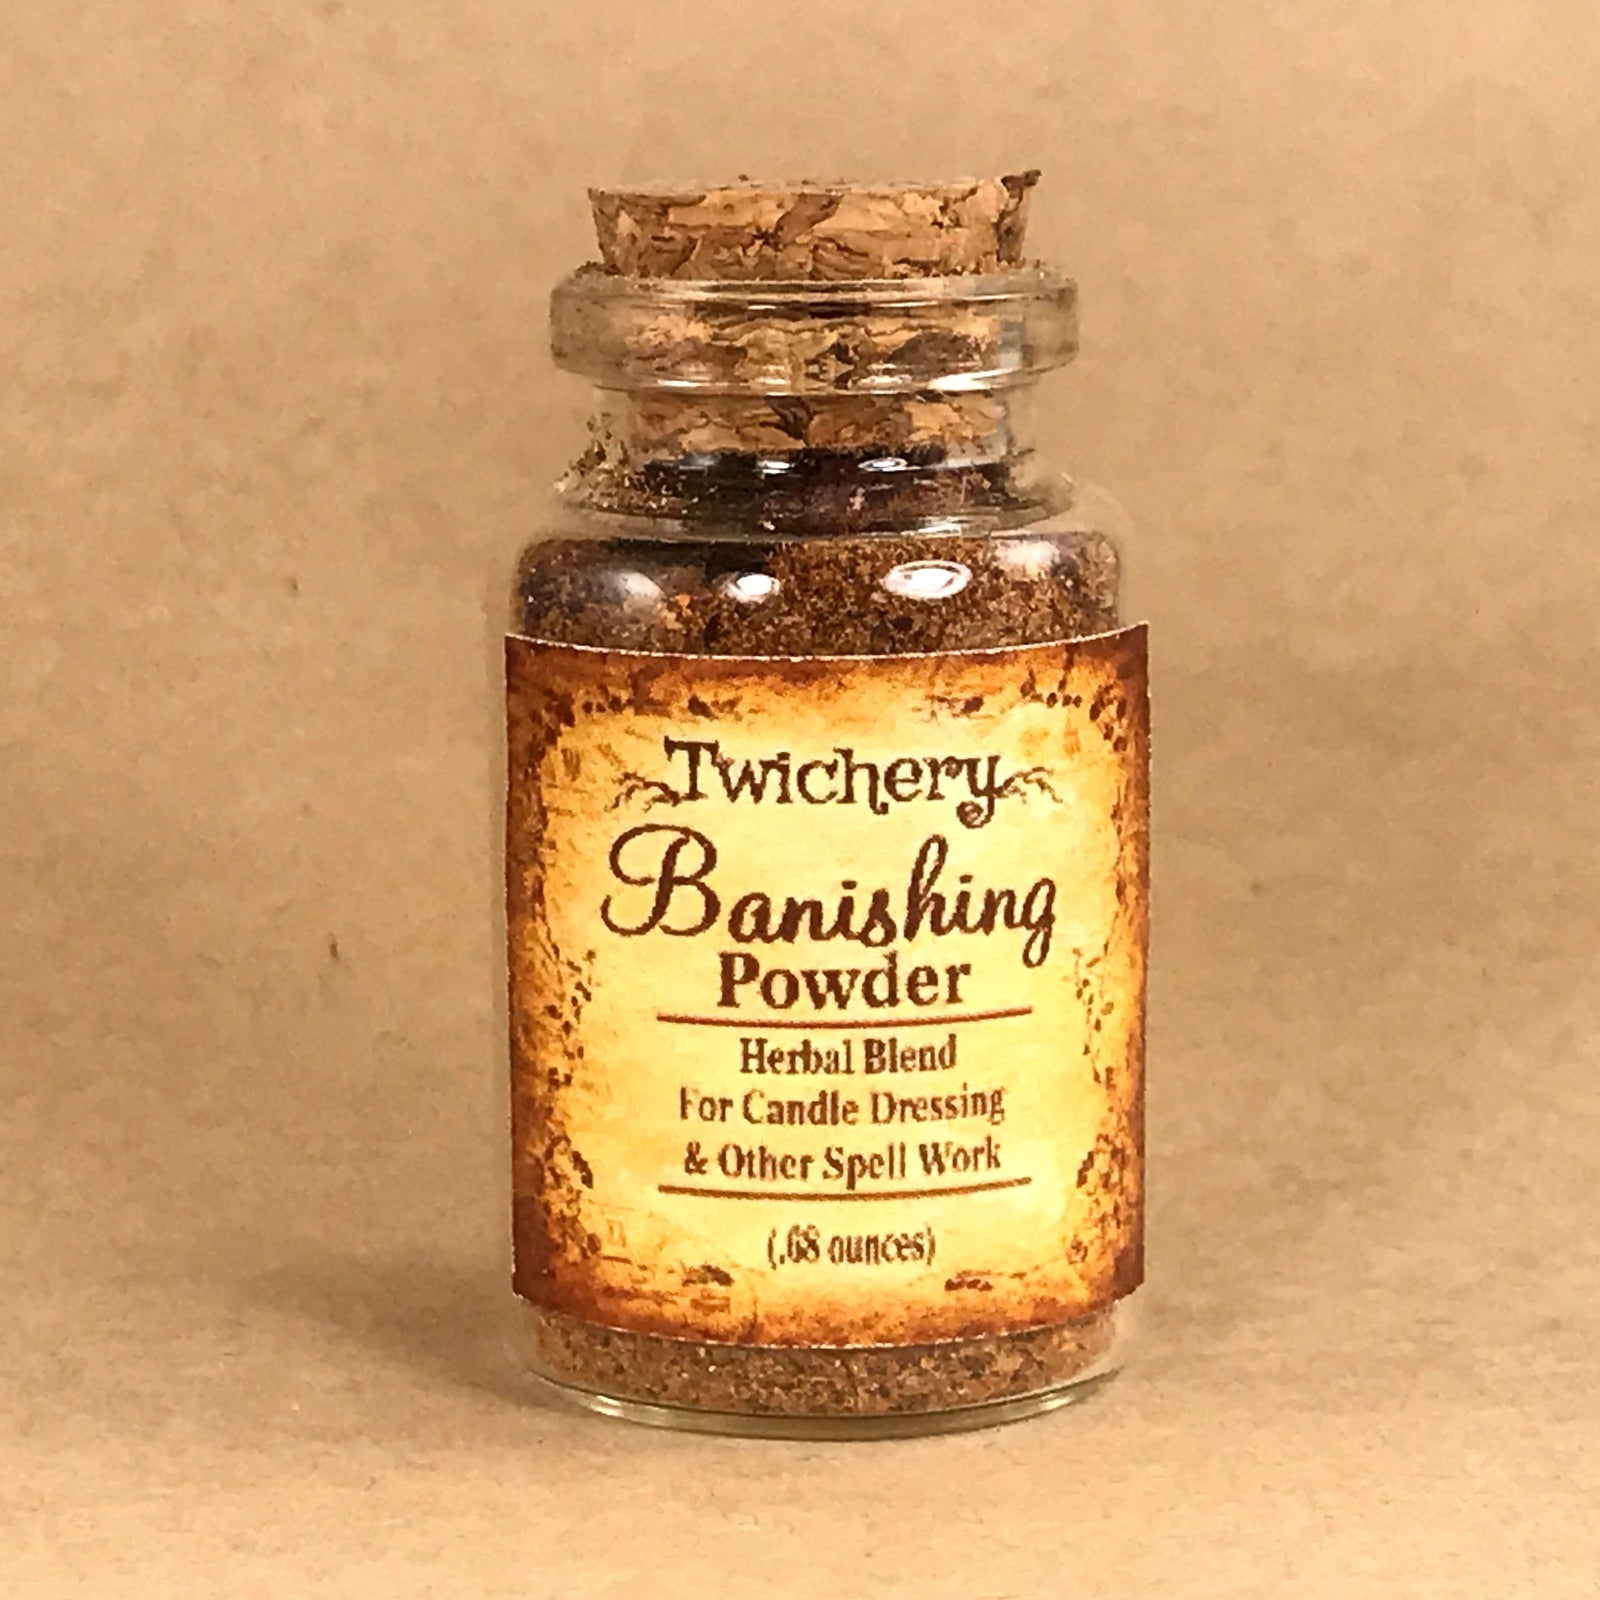 Twichery Banishing Powder is for candle dressing and spell casting involving the banishing of spirits from PLACES. Hoodoo Voodoo Wicca Pagan Traditional Witchcraft